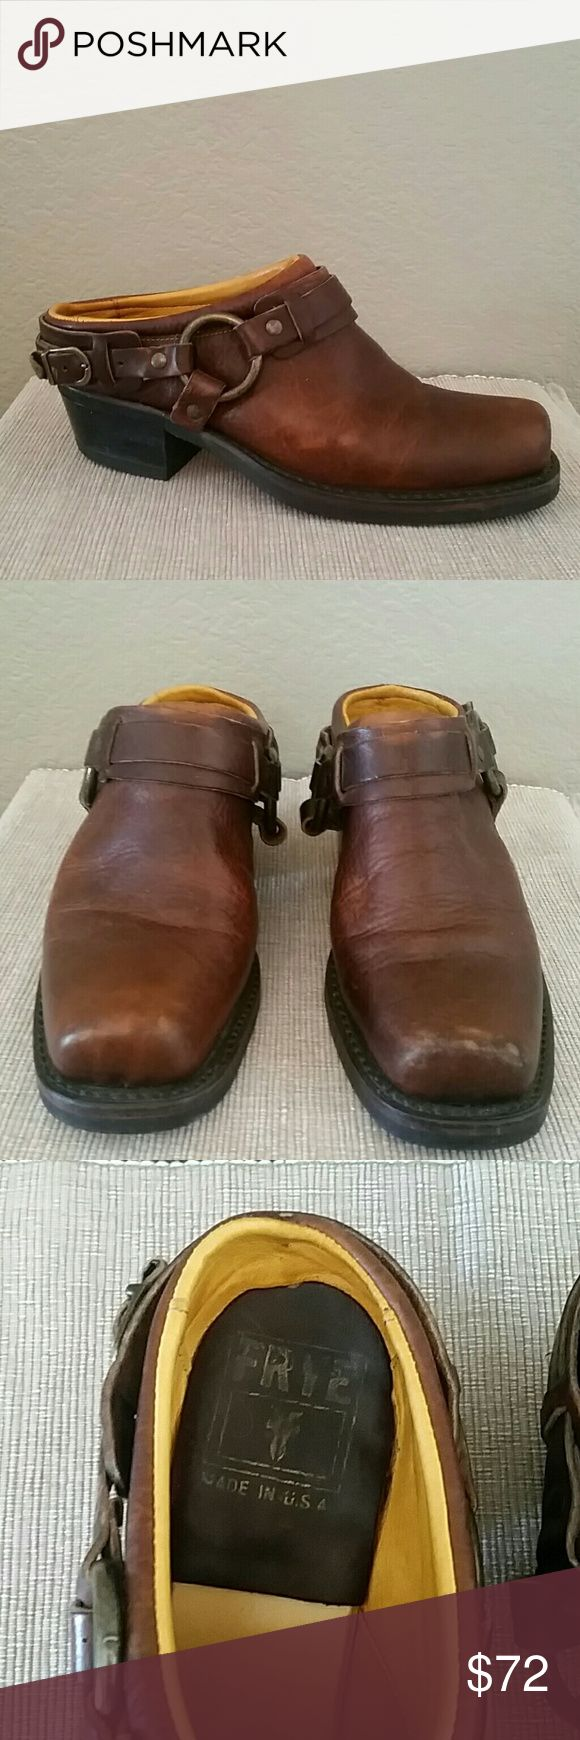 Frye boots Frye mules, slip on booties, 7 1/2, neoprene oil resistant, excellent used condition, minor knicks, see pics, 2inch heel, Chestnut mule clog, Frye Shoes Mules & Clogs